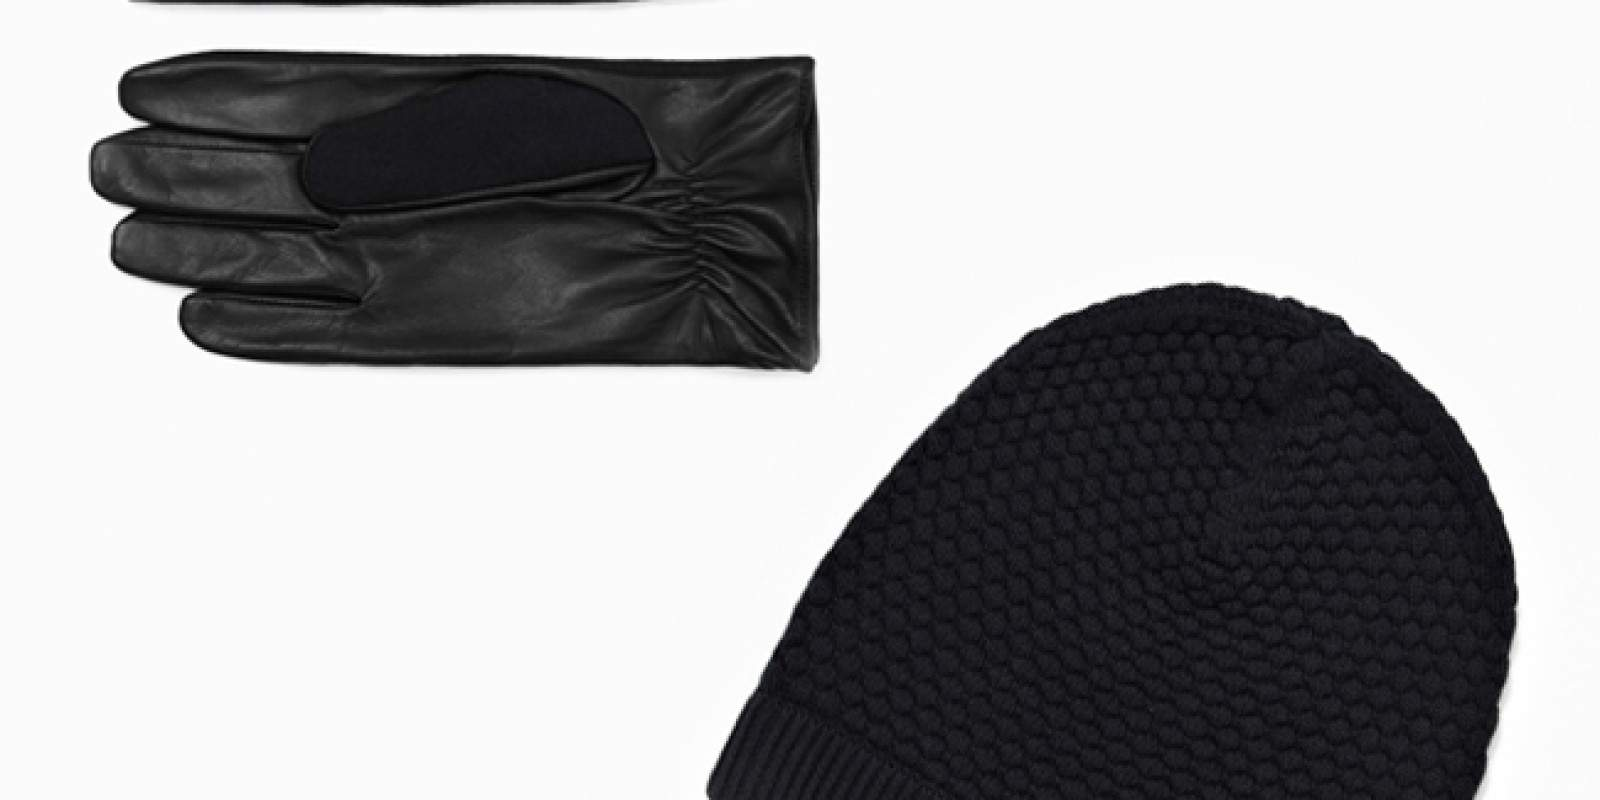 COS Wool and leather gloves & Cotton knit hat